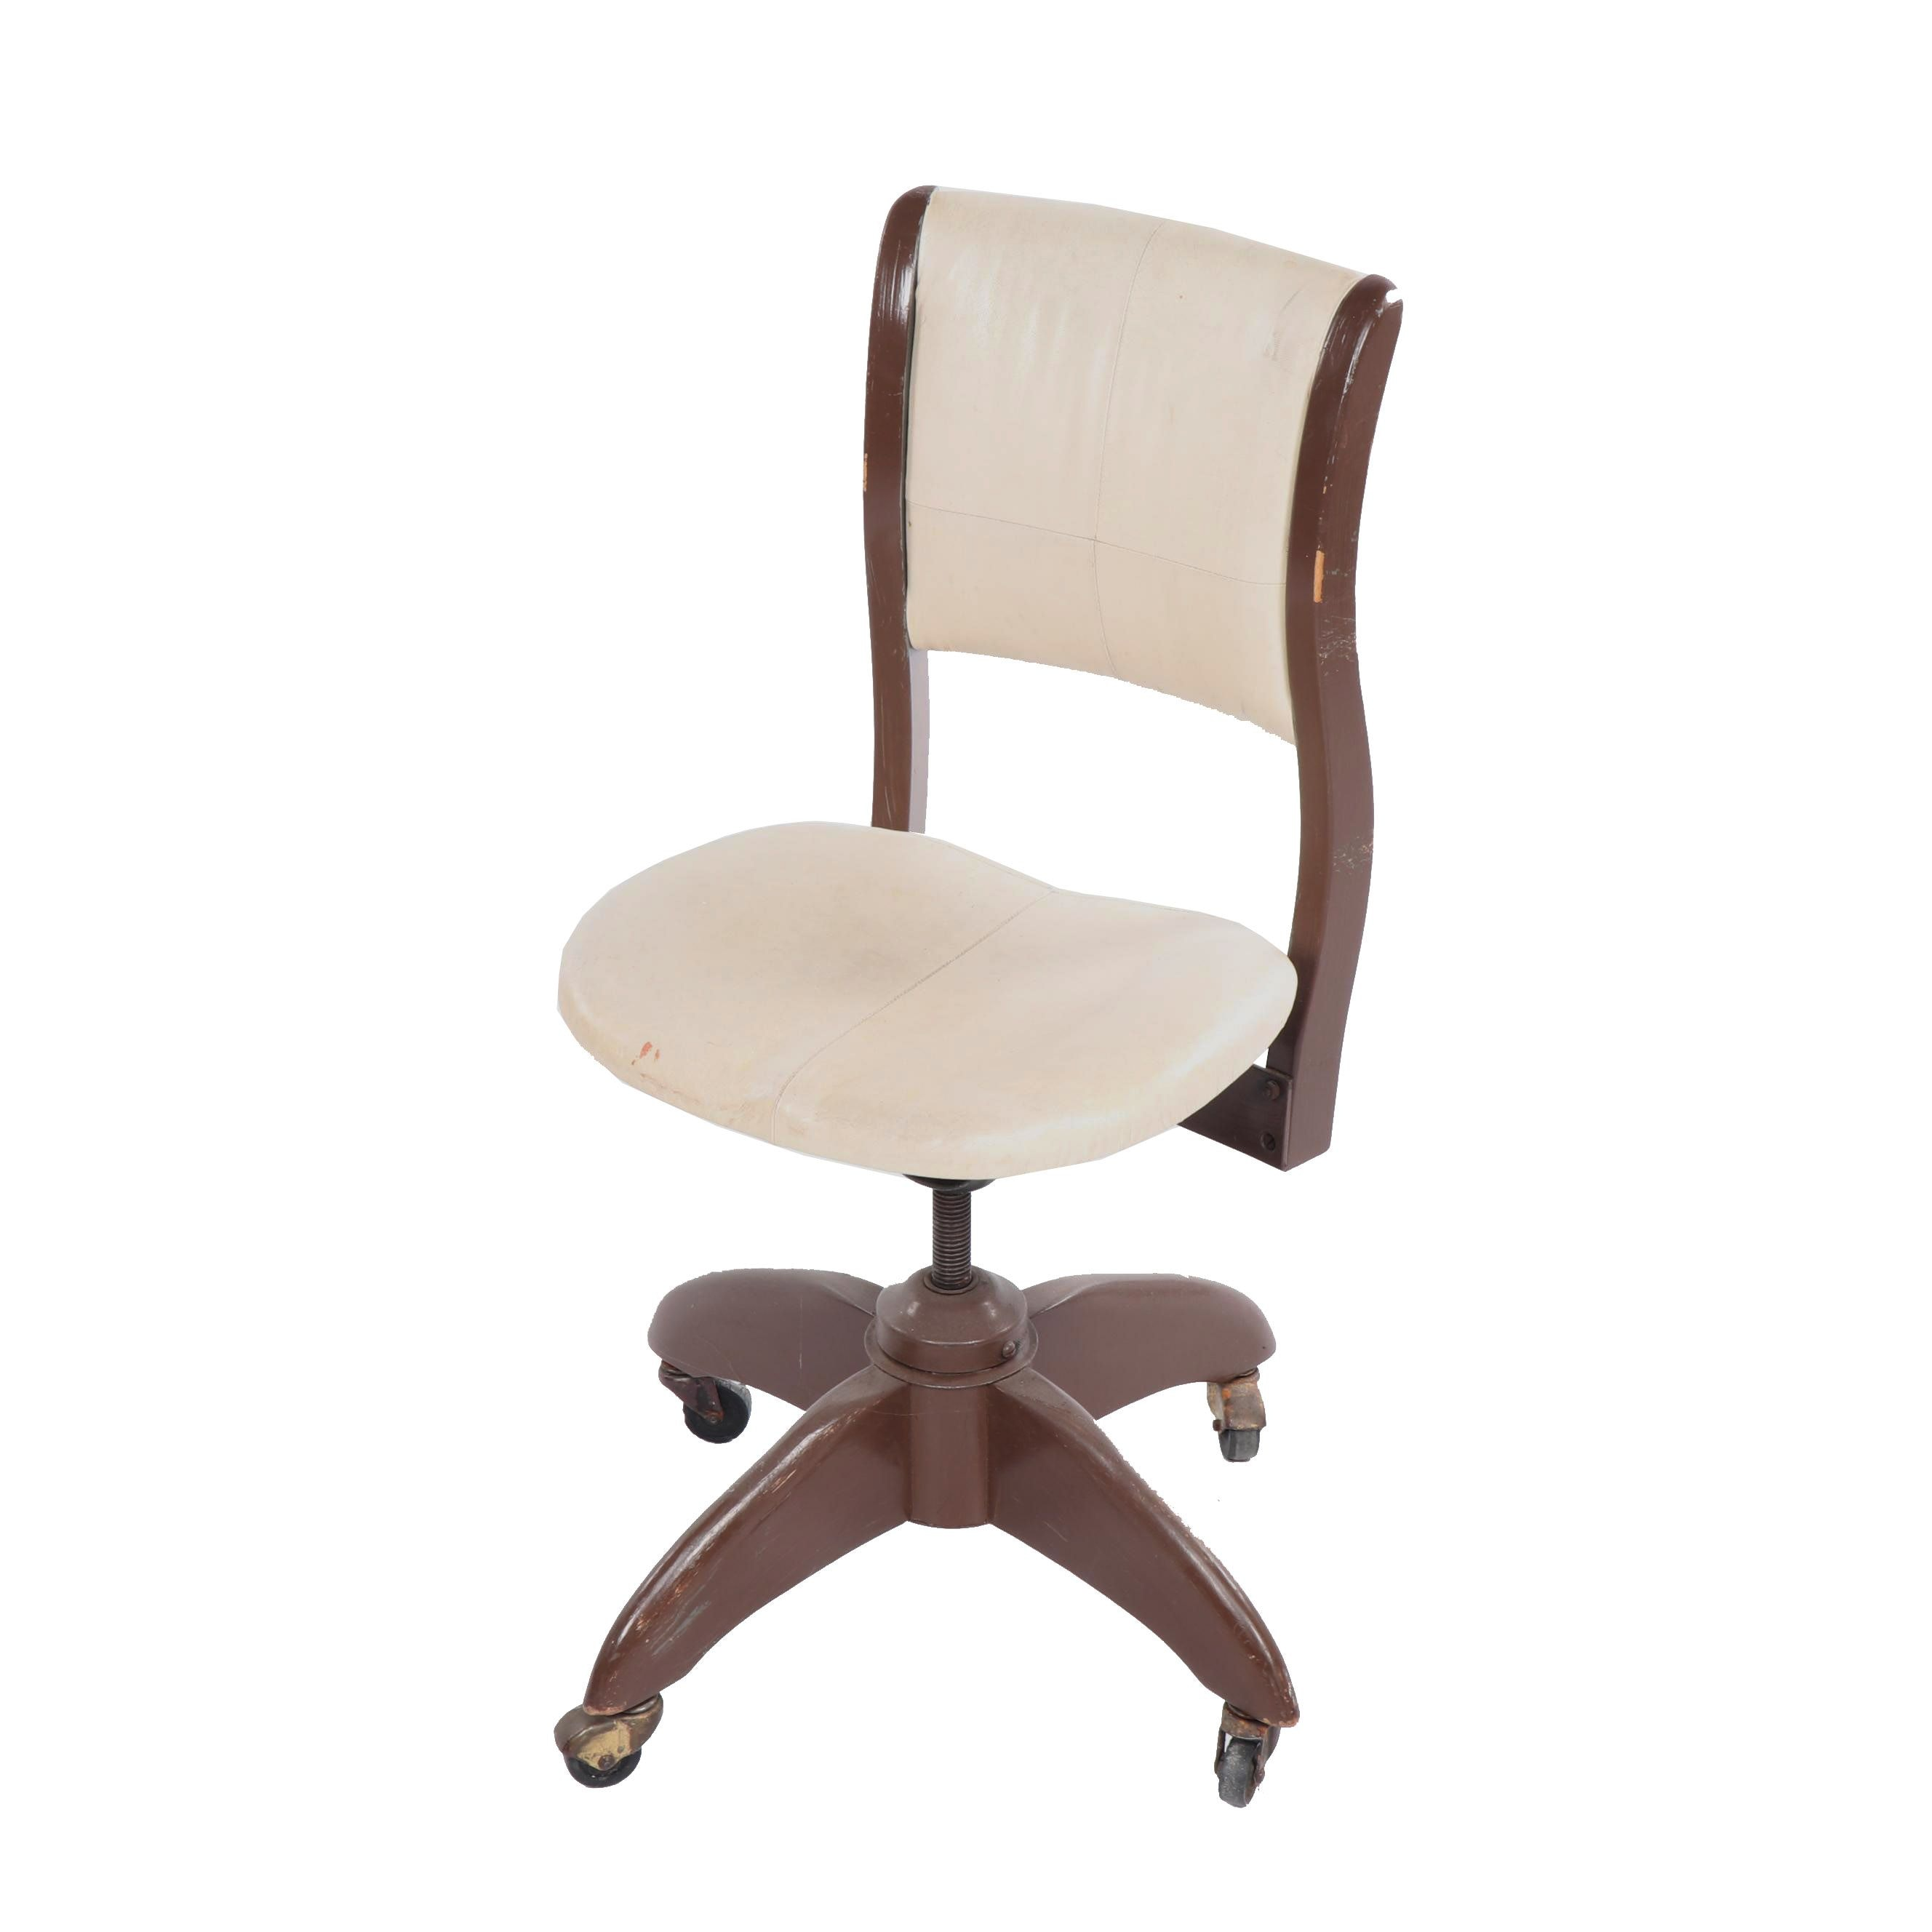 Leather Upholstered Painted Wood Secretary Chair, Mid-20th Century